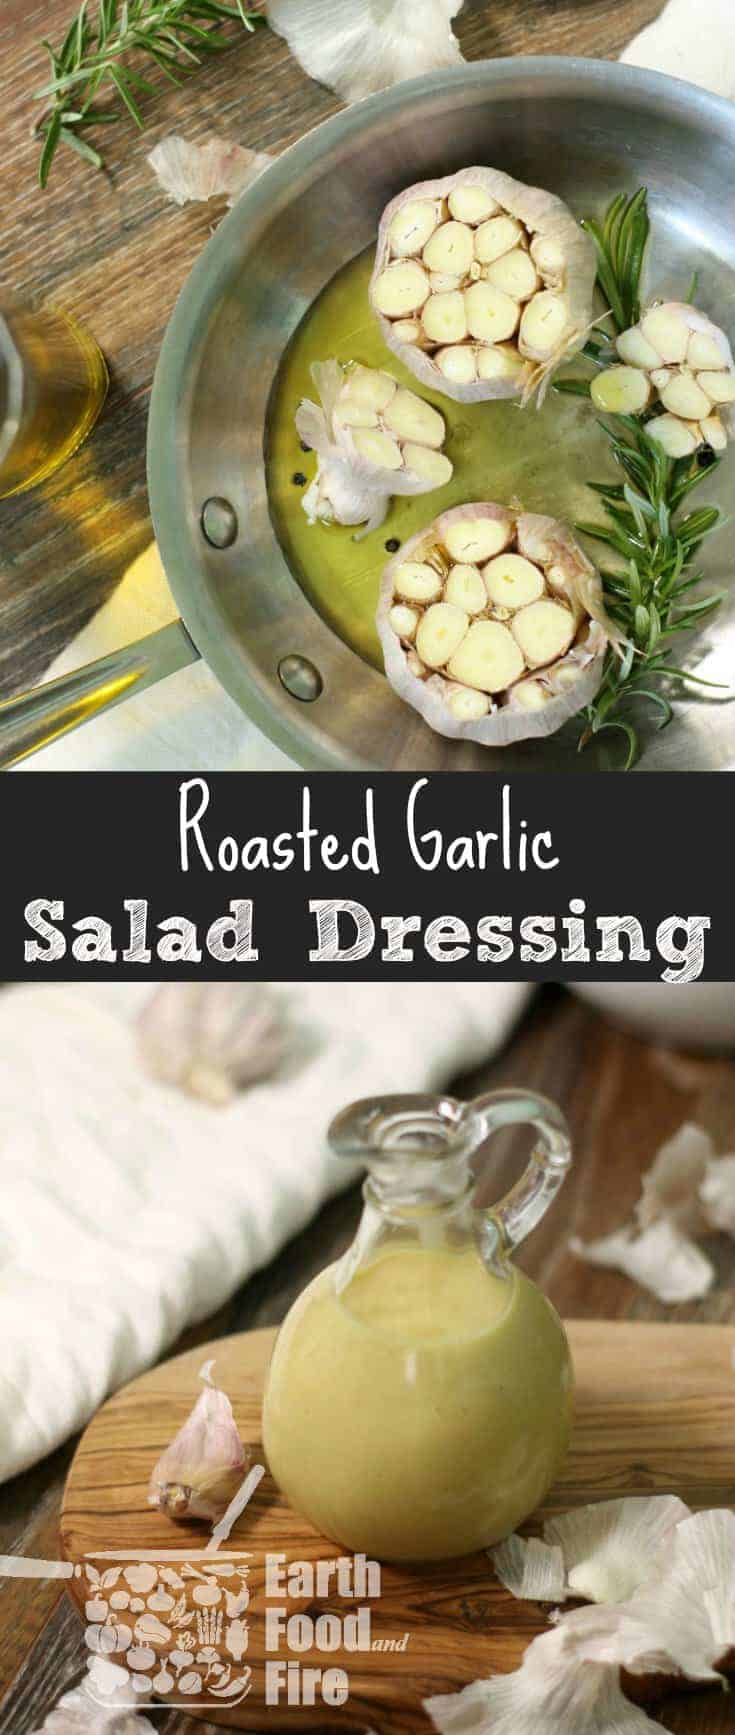 This easy to make creamy roasted garlic salad dressing will instantly become your new favorite vinaigrette. Ideal for a wide range of salads, this gluten free dressing can be used as a base for many other dressings as well!